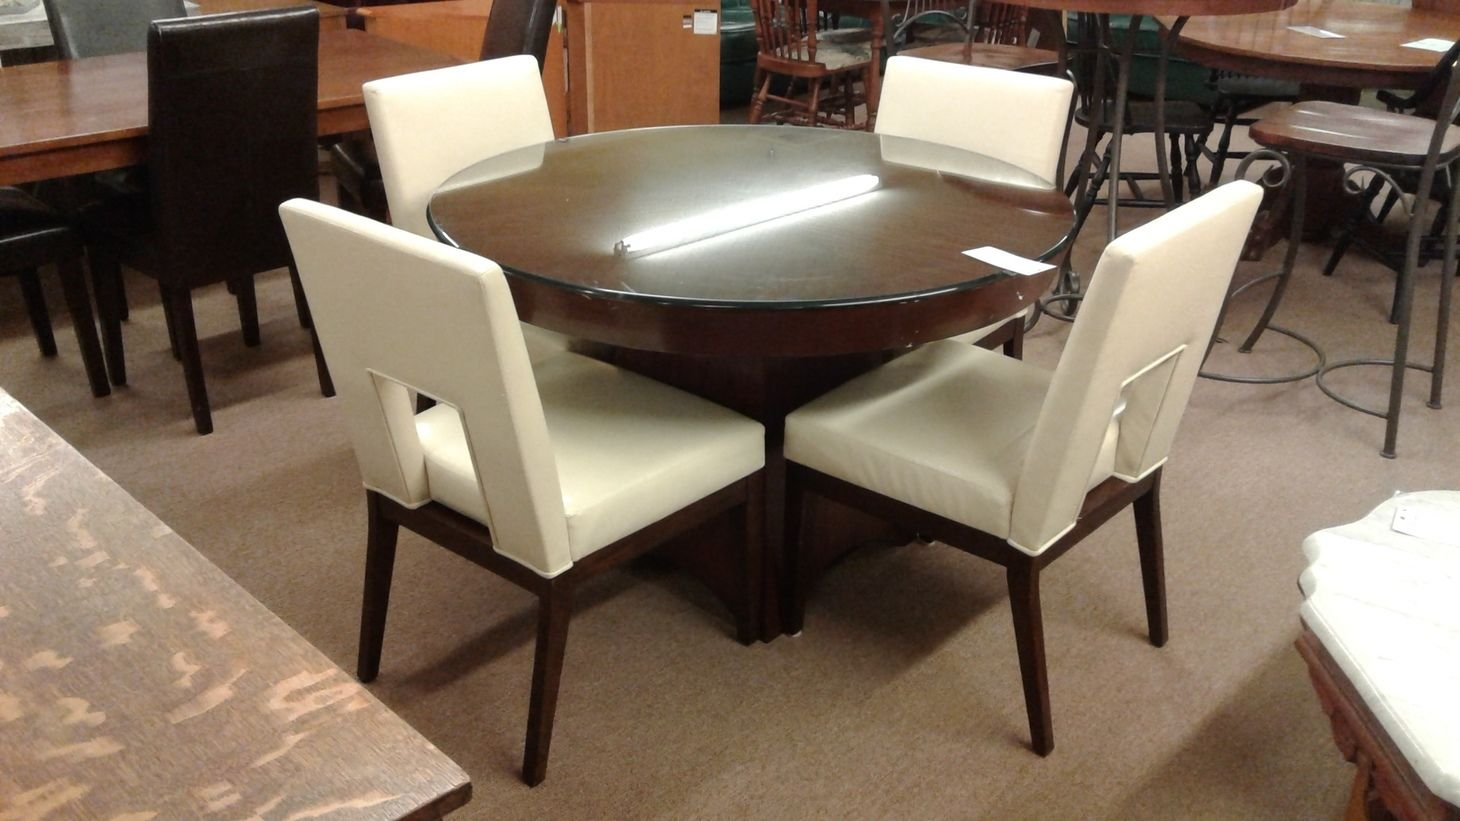 Pier one dining table chairs delmarva furniture